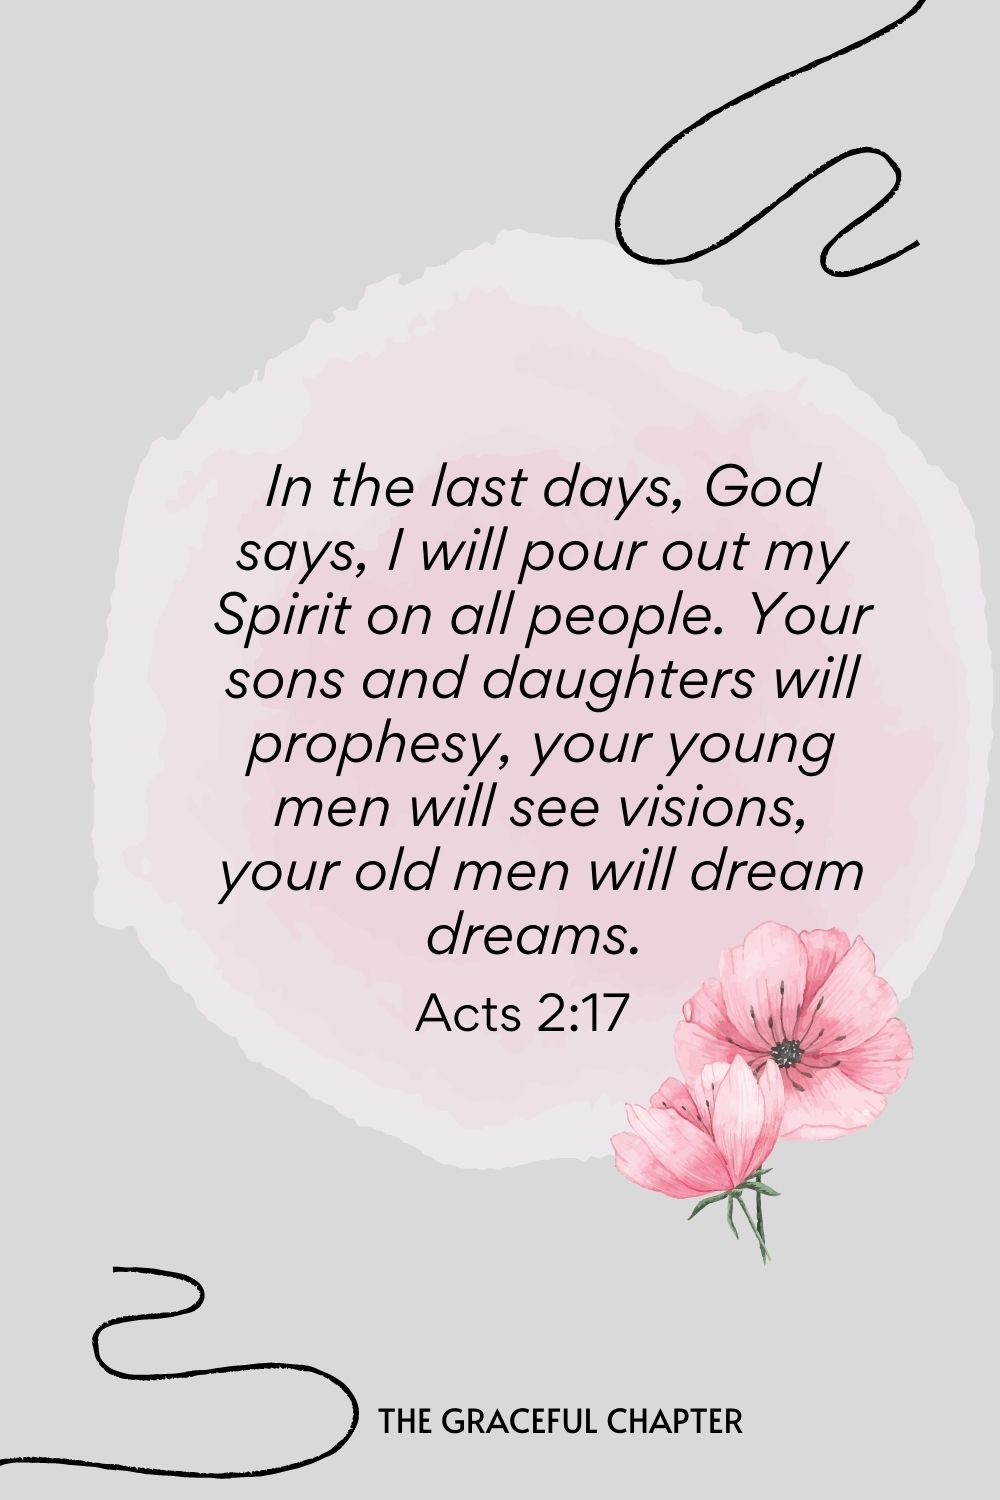 In the last days, God says, I will pour out my Spirit on all people. Your sons and daughters will prophesy, your young men will see visions, your old men will dream dreams.  Acts 2:17